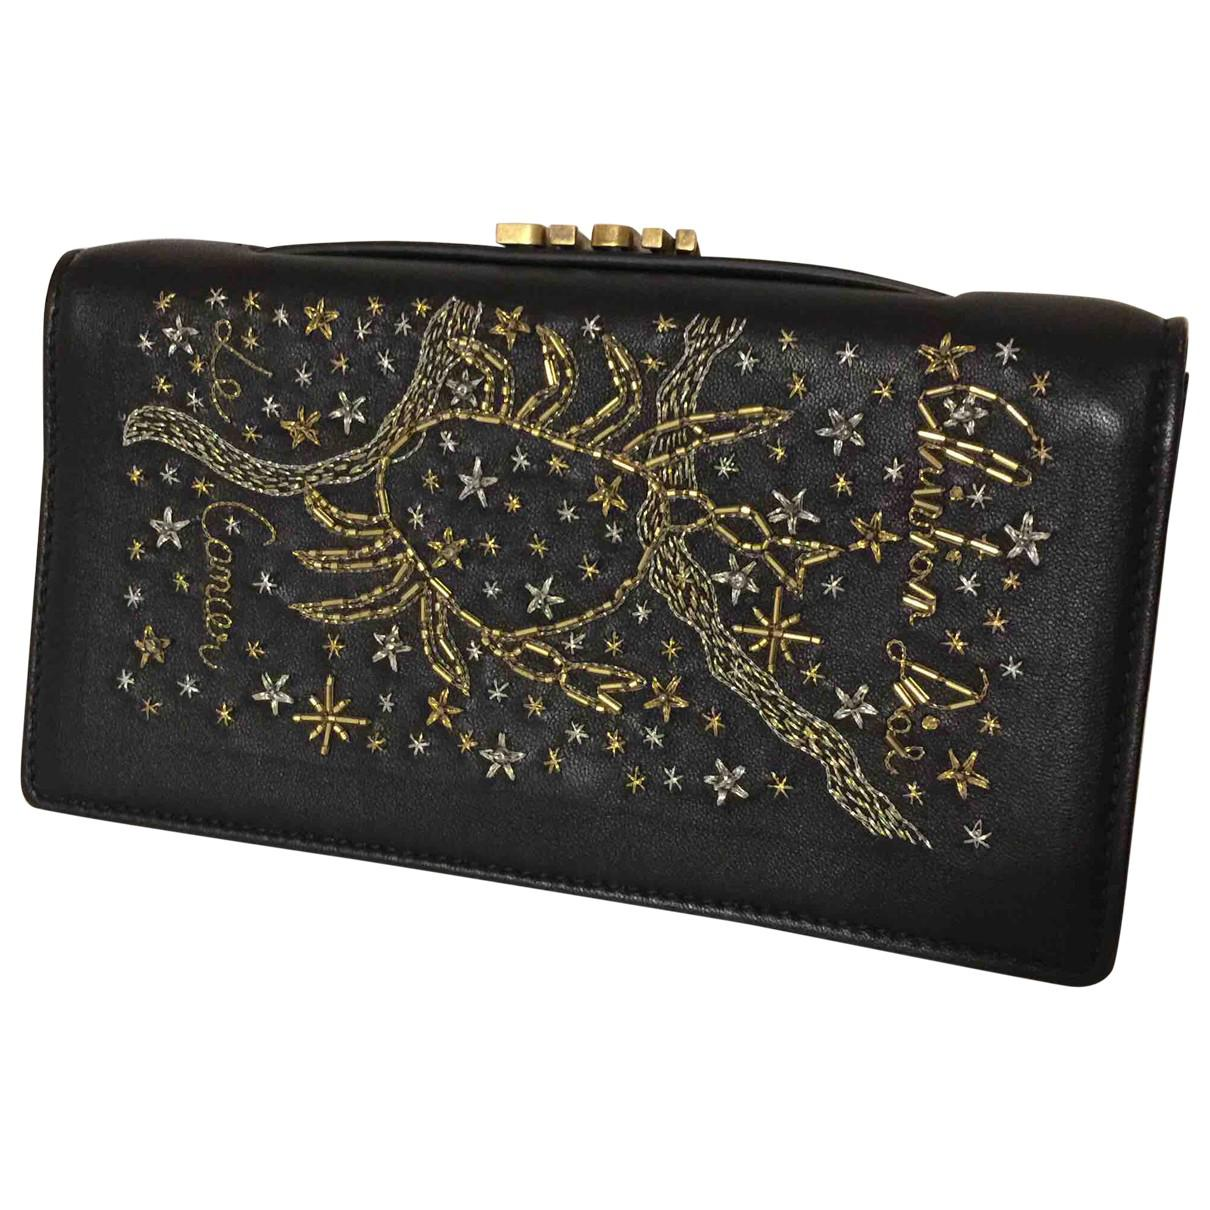 Dior Pre-owned - Leather clutch bag 8xm2jpF